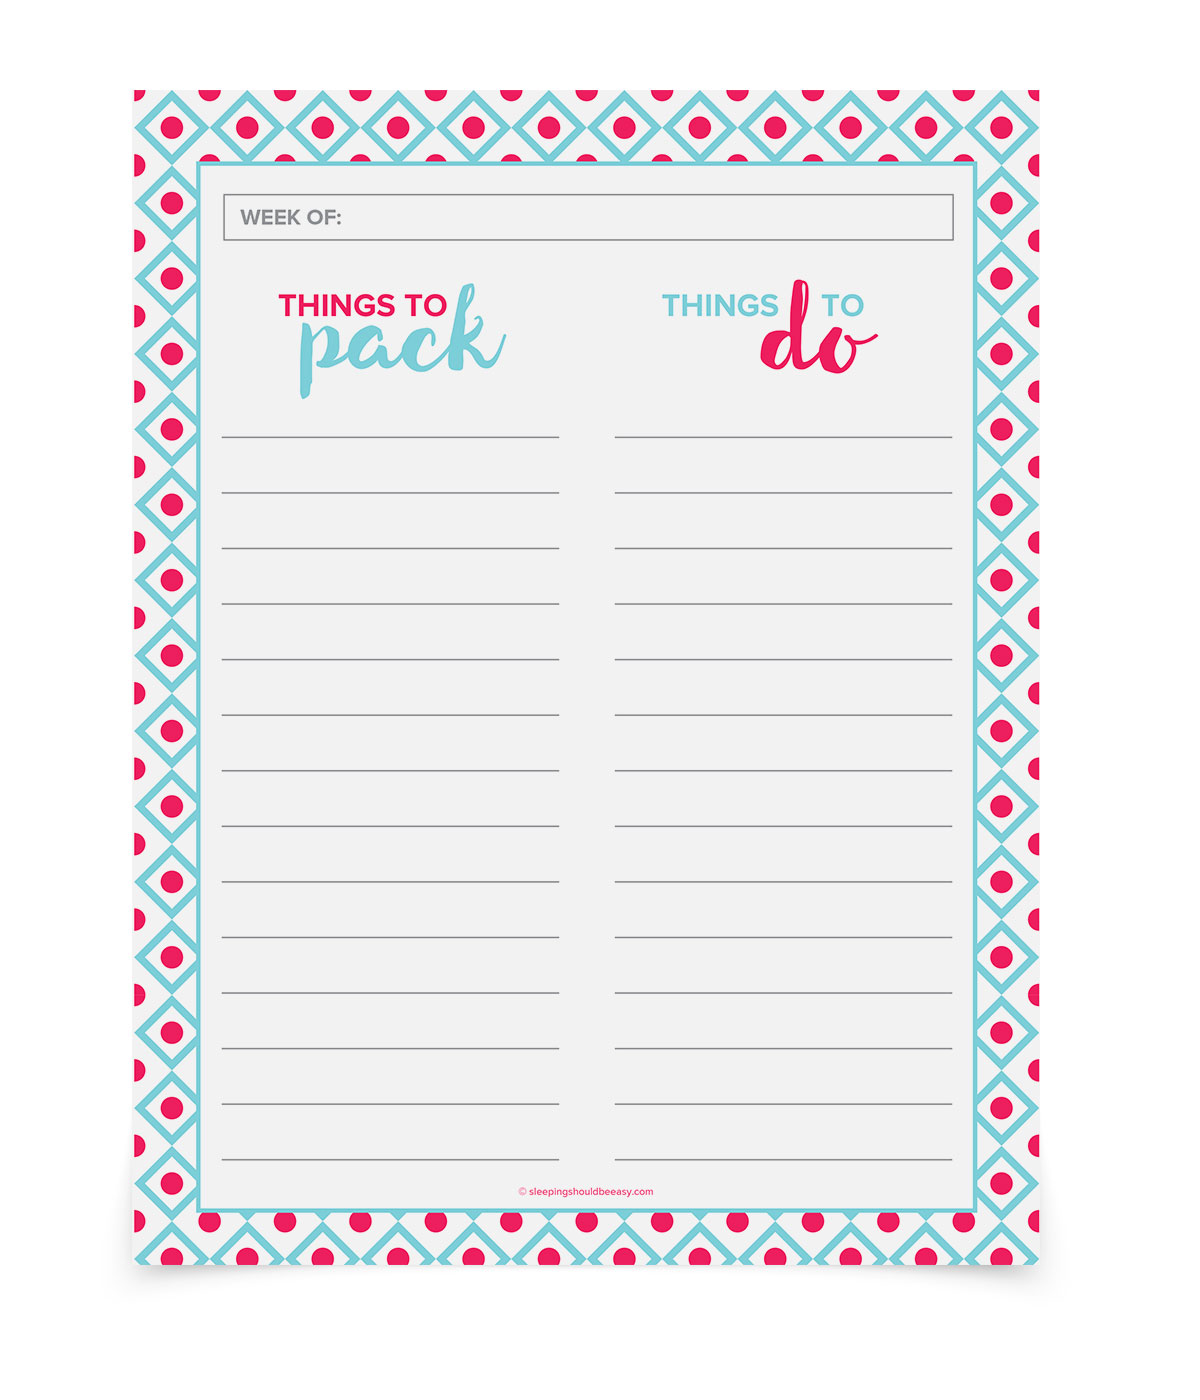 A FREE printable to-do list. Remind yourself things you need to pack for the next day. You can also write all the tasks you need to do. Download the free printable and get organized!